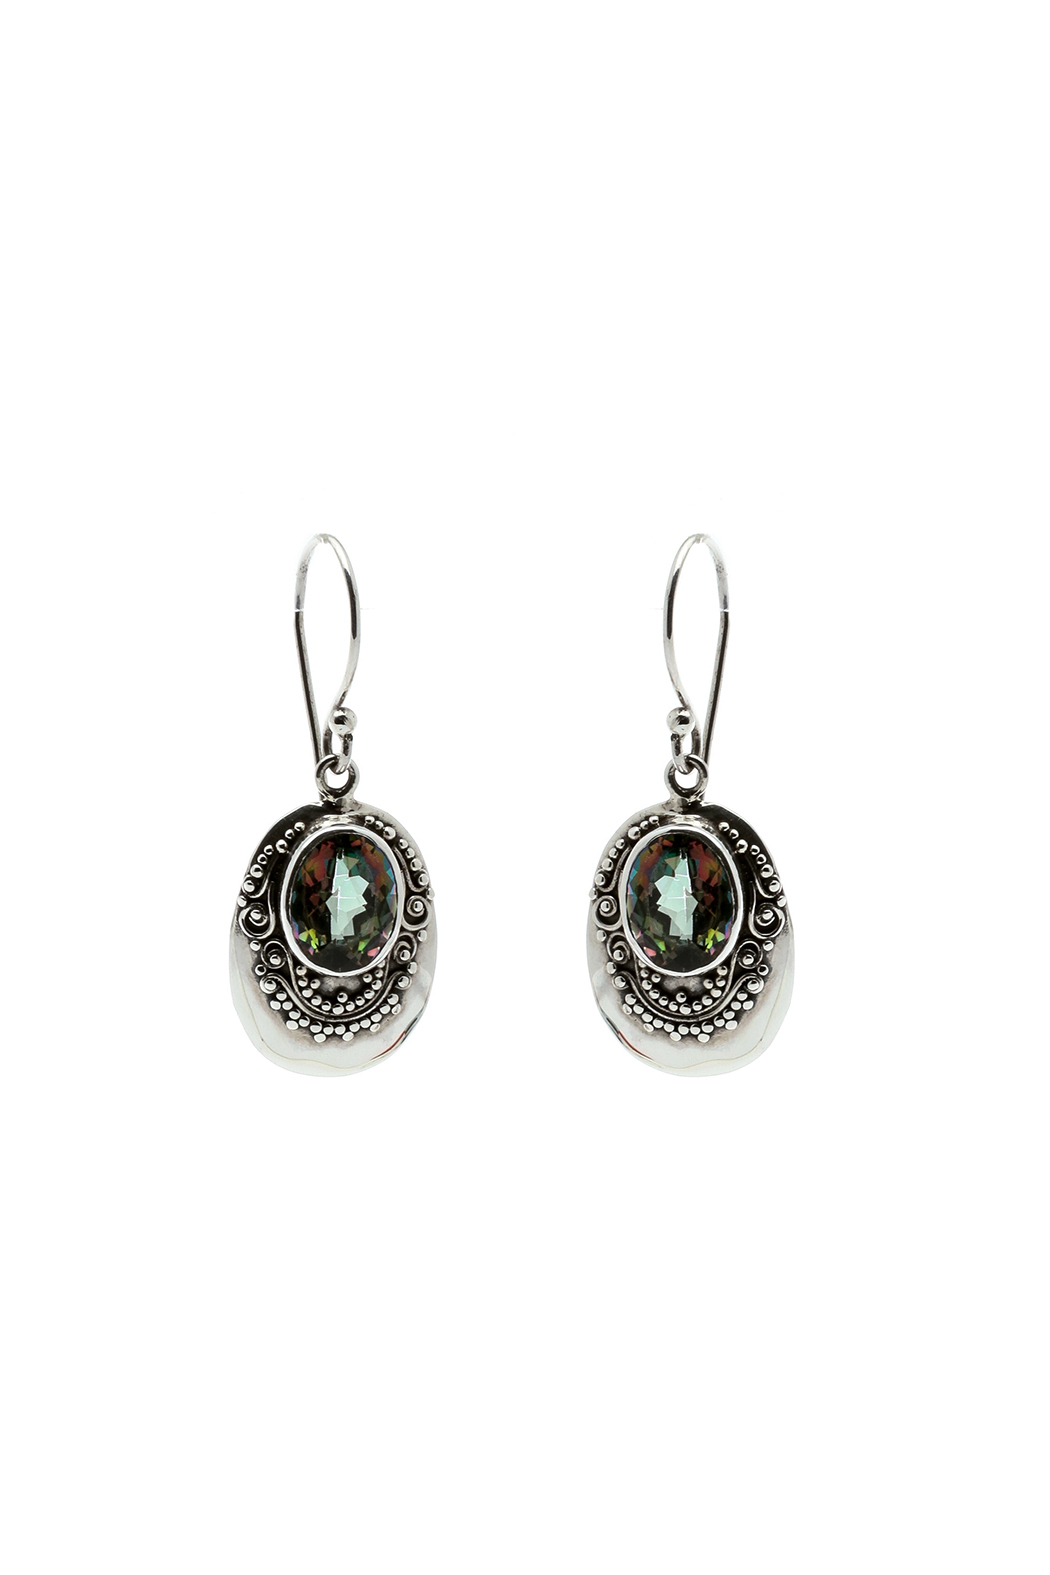 Eyes of the World Imports Mystic Topaz Earrings - Main Image